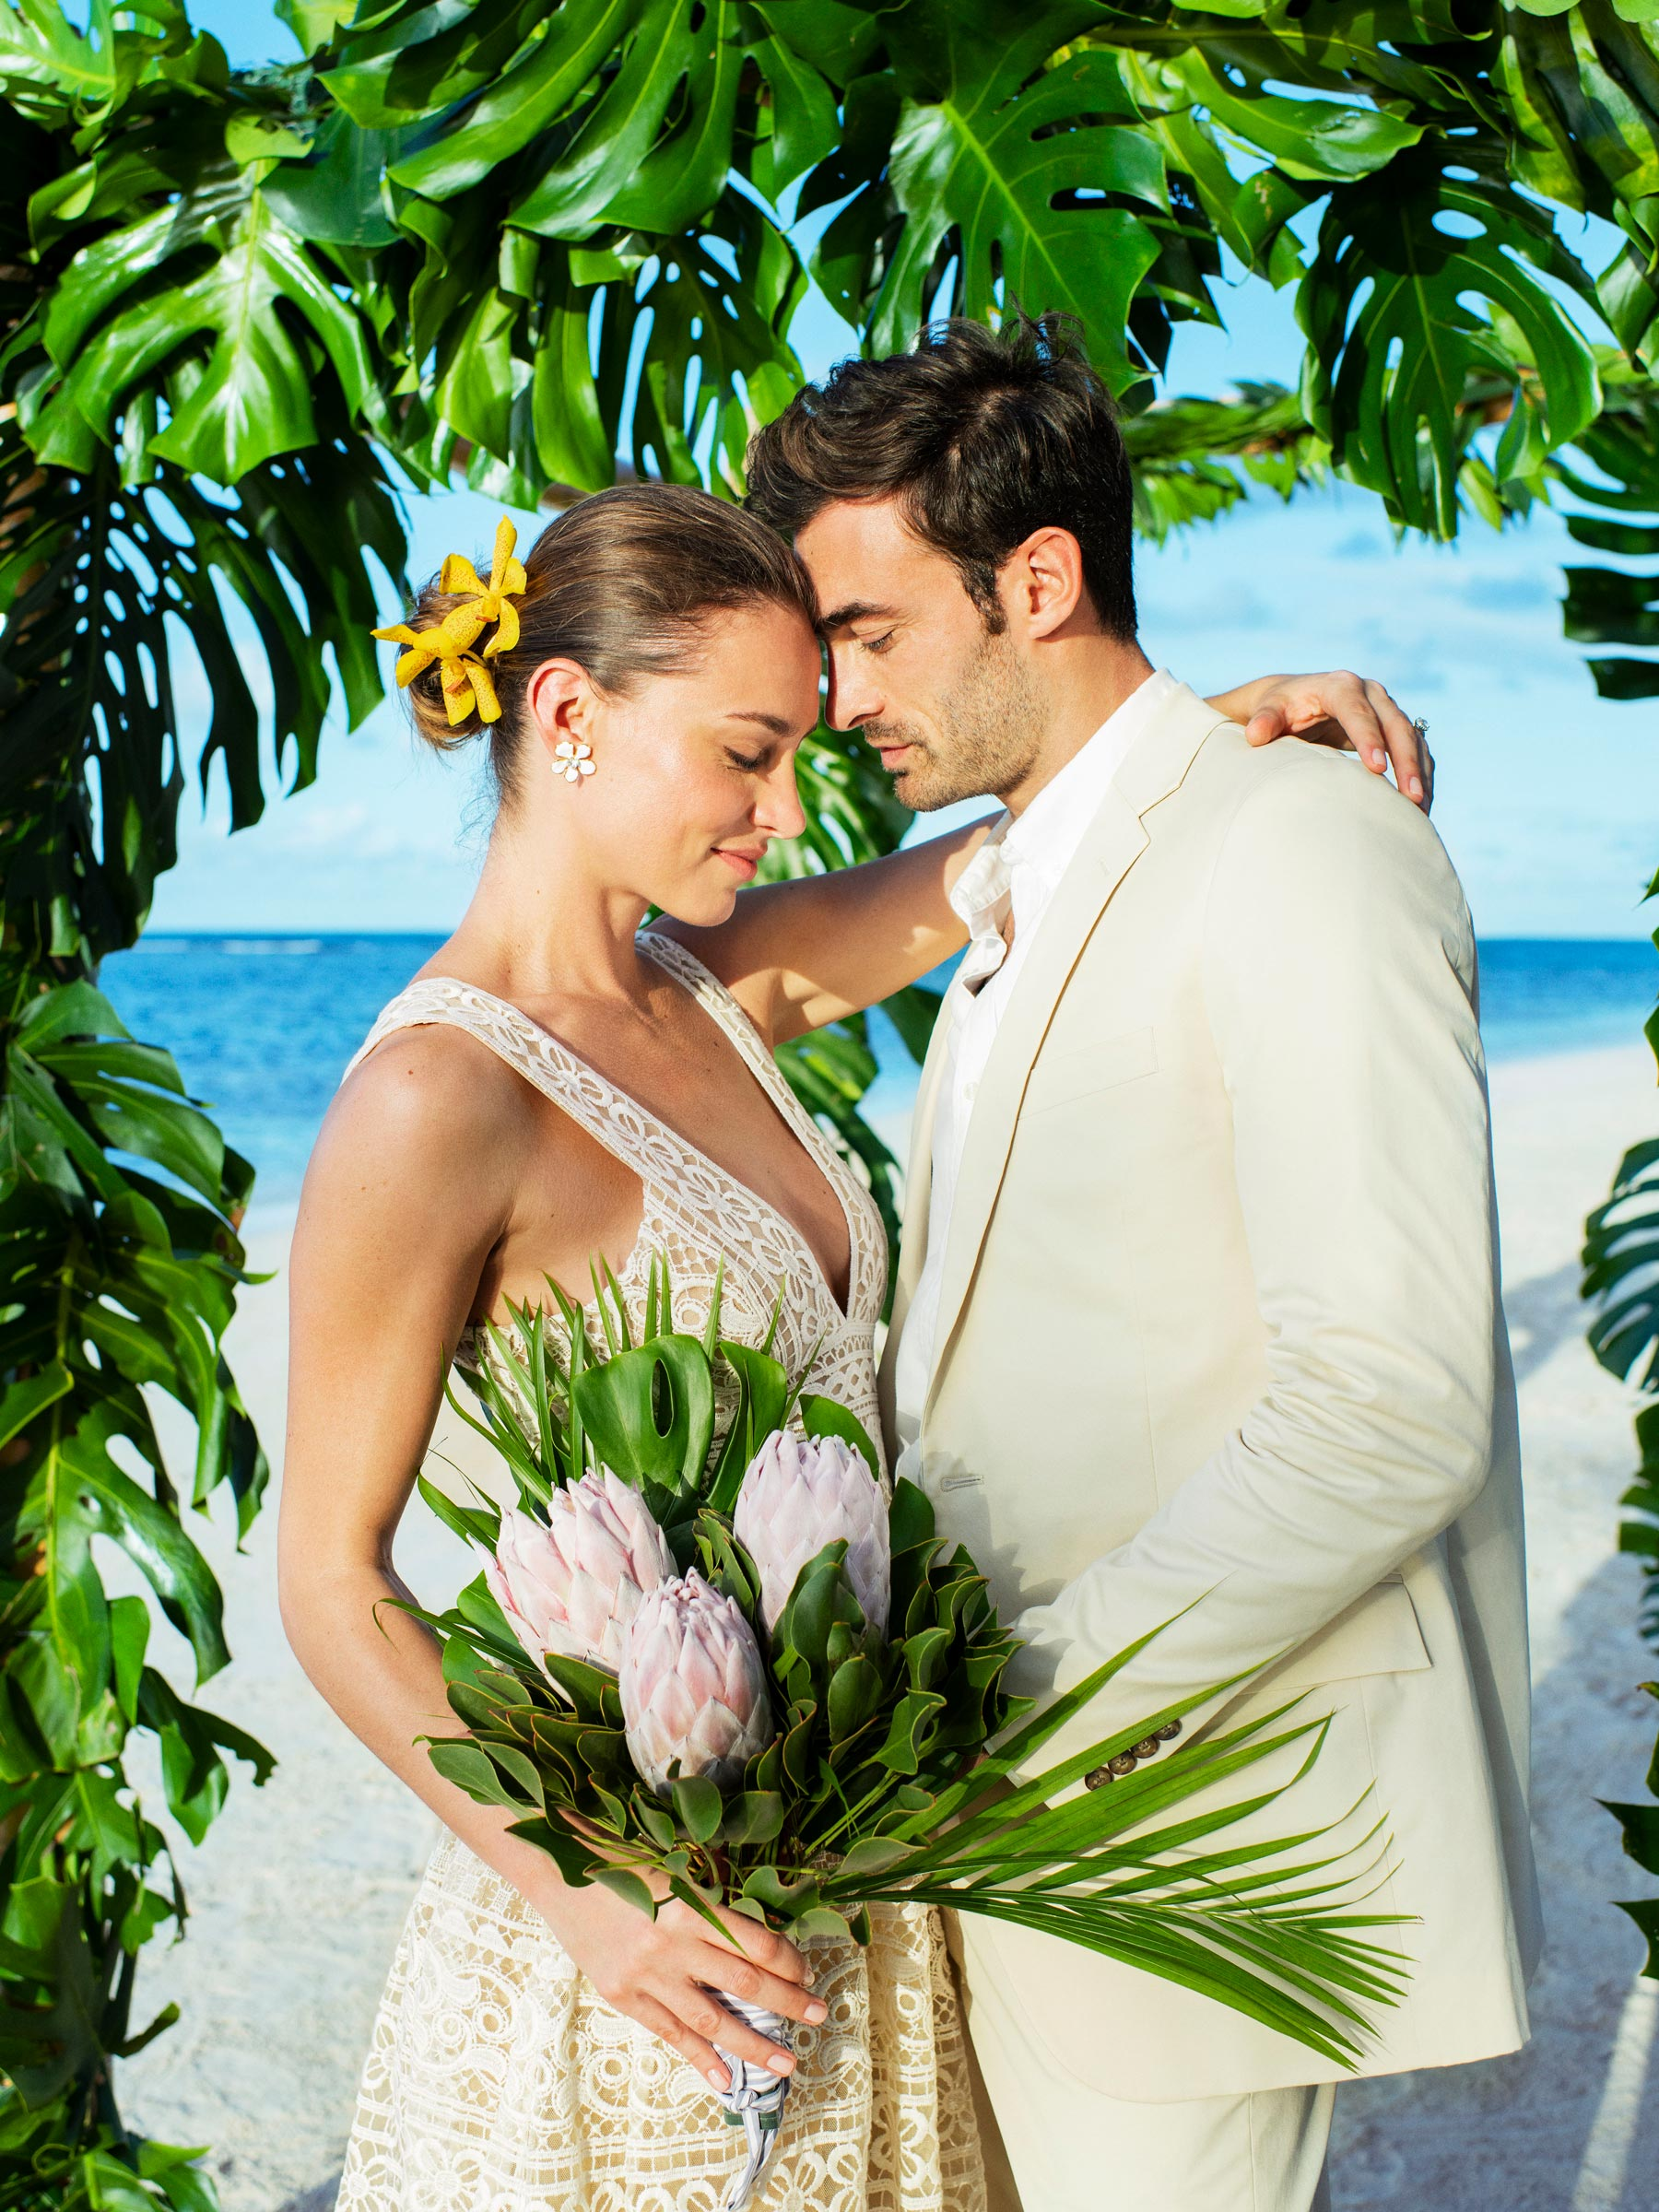 Destination Weddings at All Inclusive Resorts in Montego Bay Jamaica